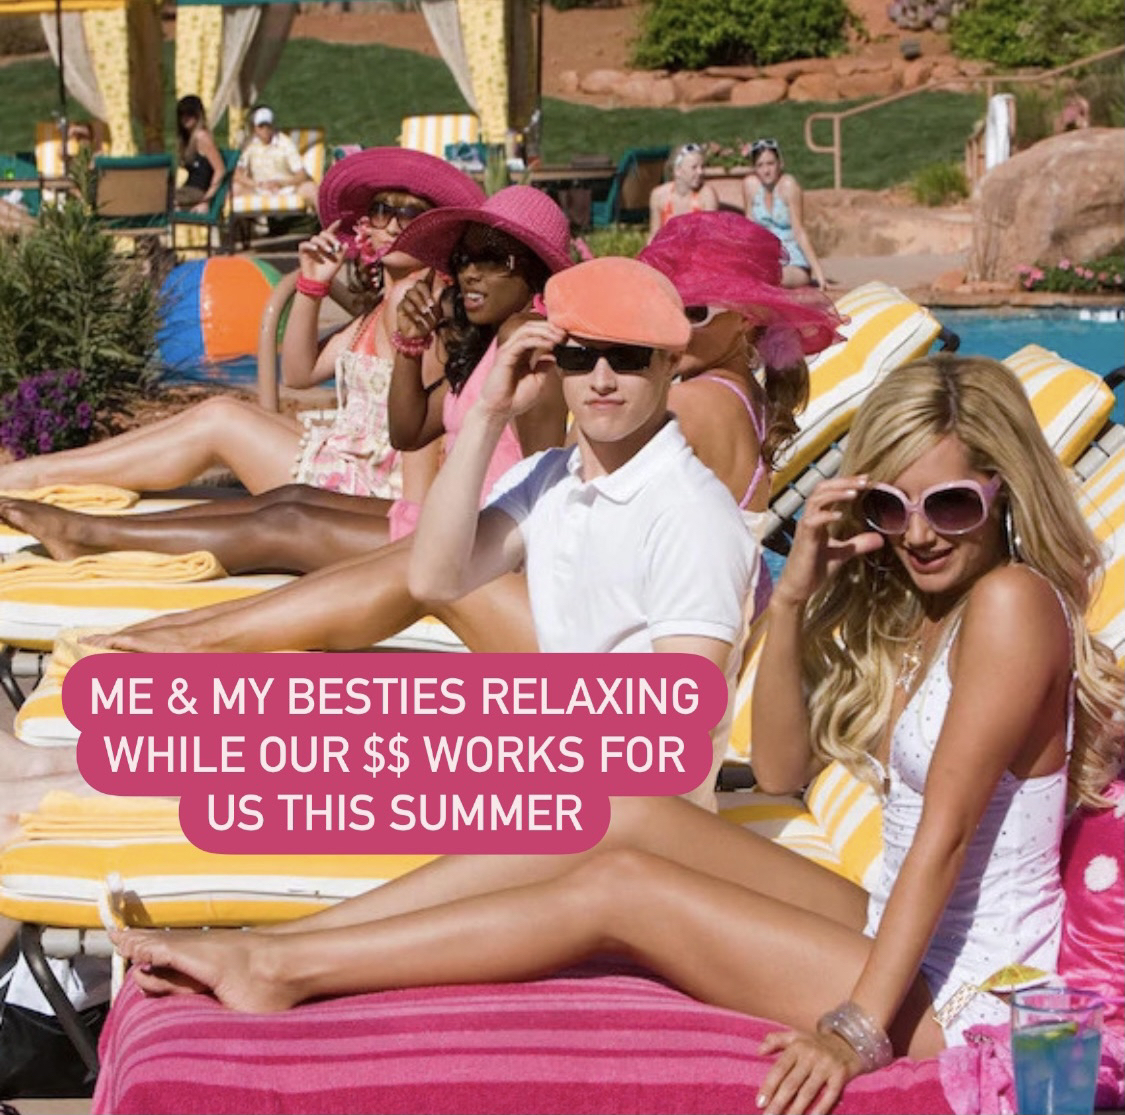 """Sharpay and Ryan lounging by the pool in """"High School Musical 2."""" It says """"Me and my besties relaxing while our $$ works for us this summer."""""""